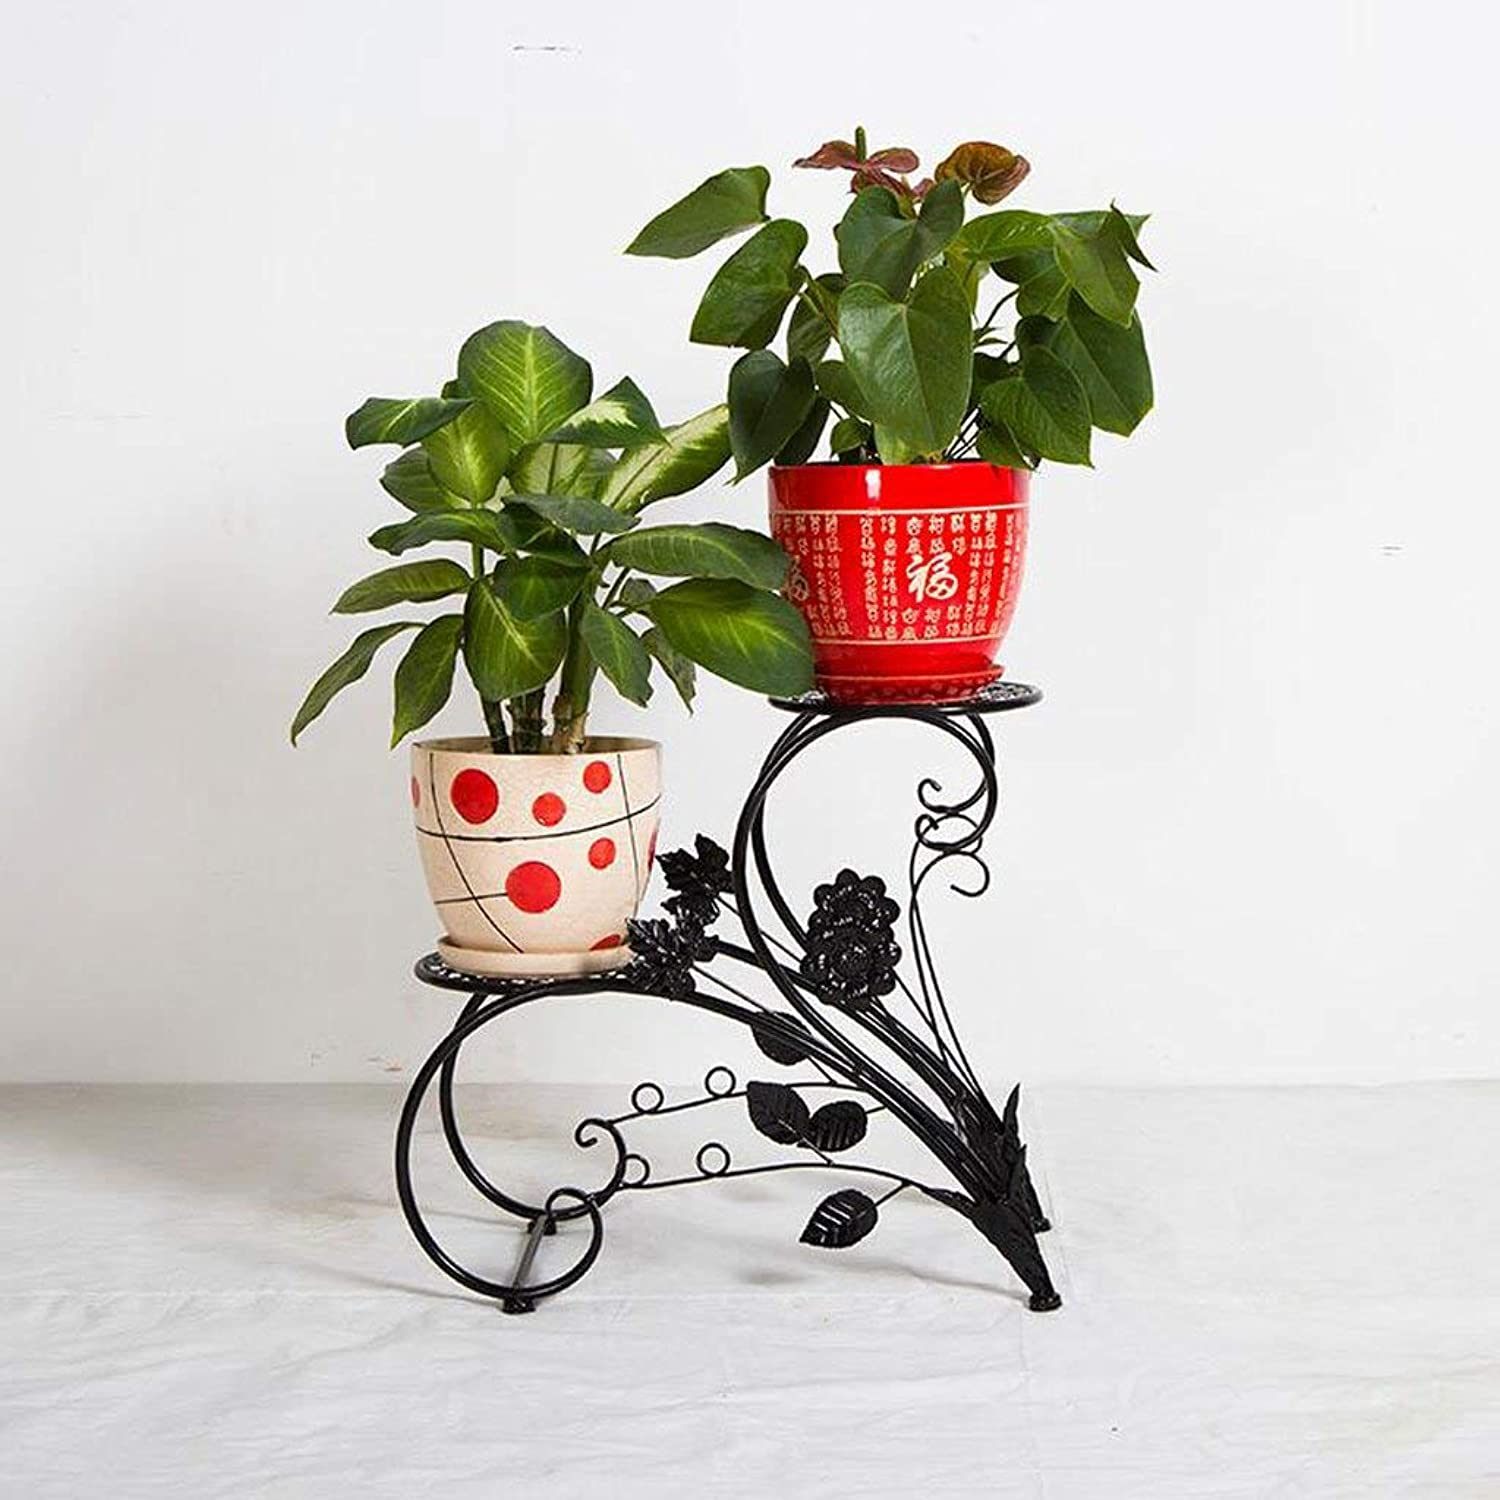 Gifts & Decor Plant Stand Shelf Flower Racks Iron Art Flower Stand Balcony Living Room with Flower Pot Rack Indoor Shelf Three-Dimensional Flower Stand (color   Black)